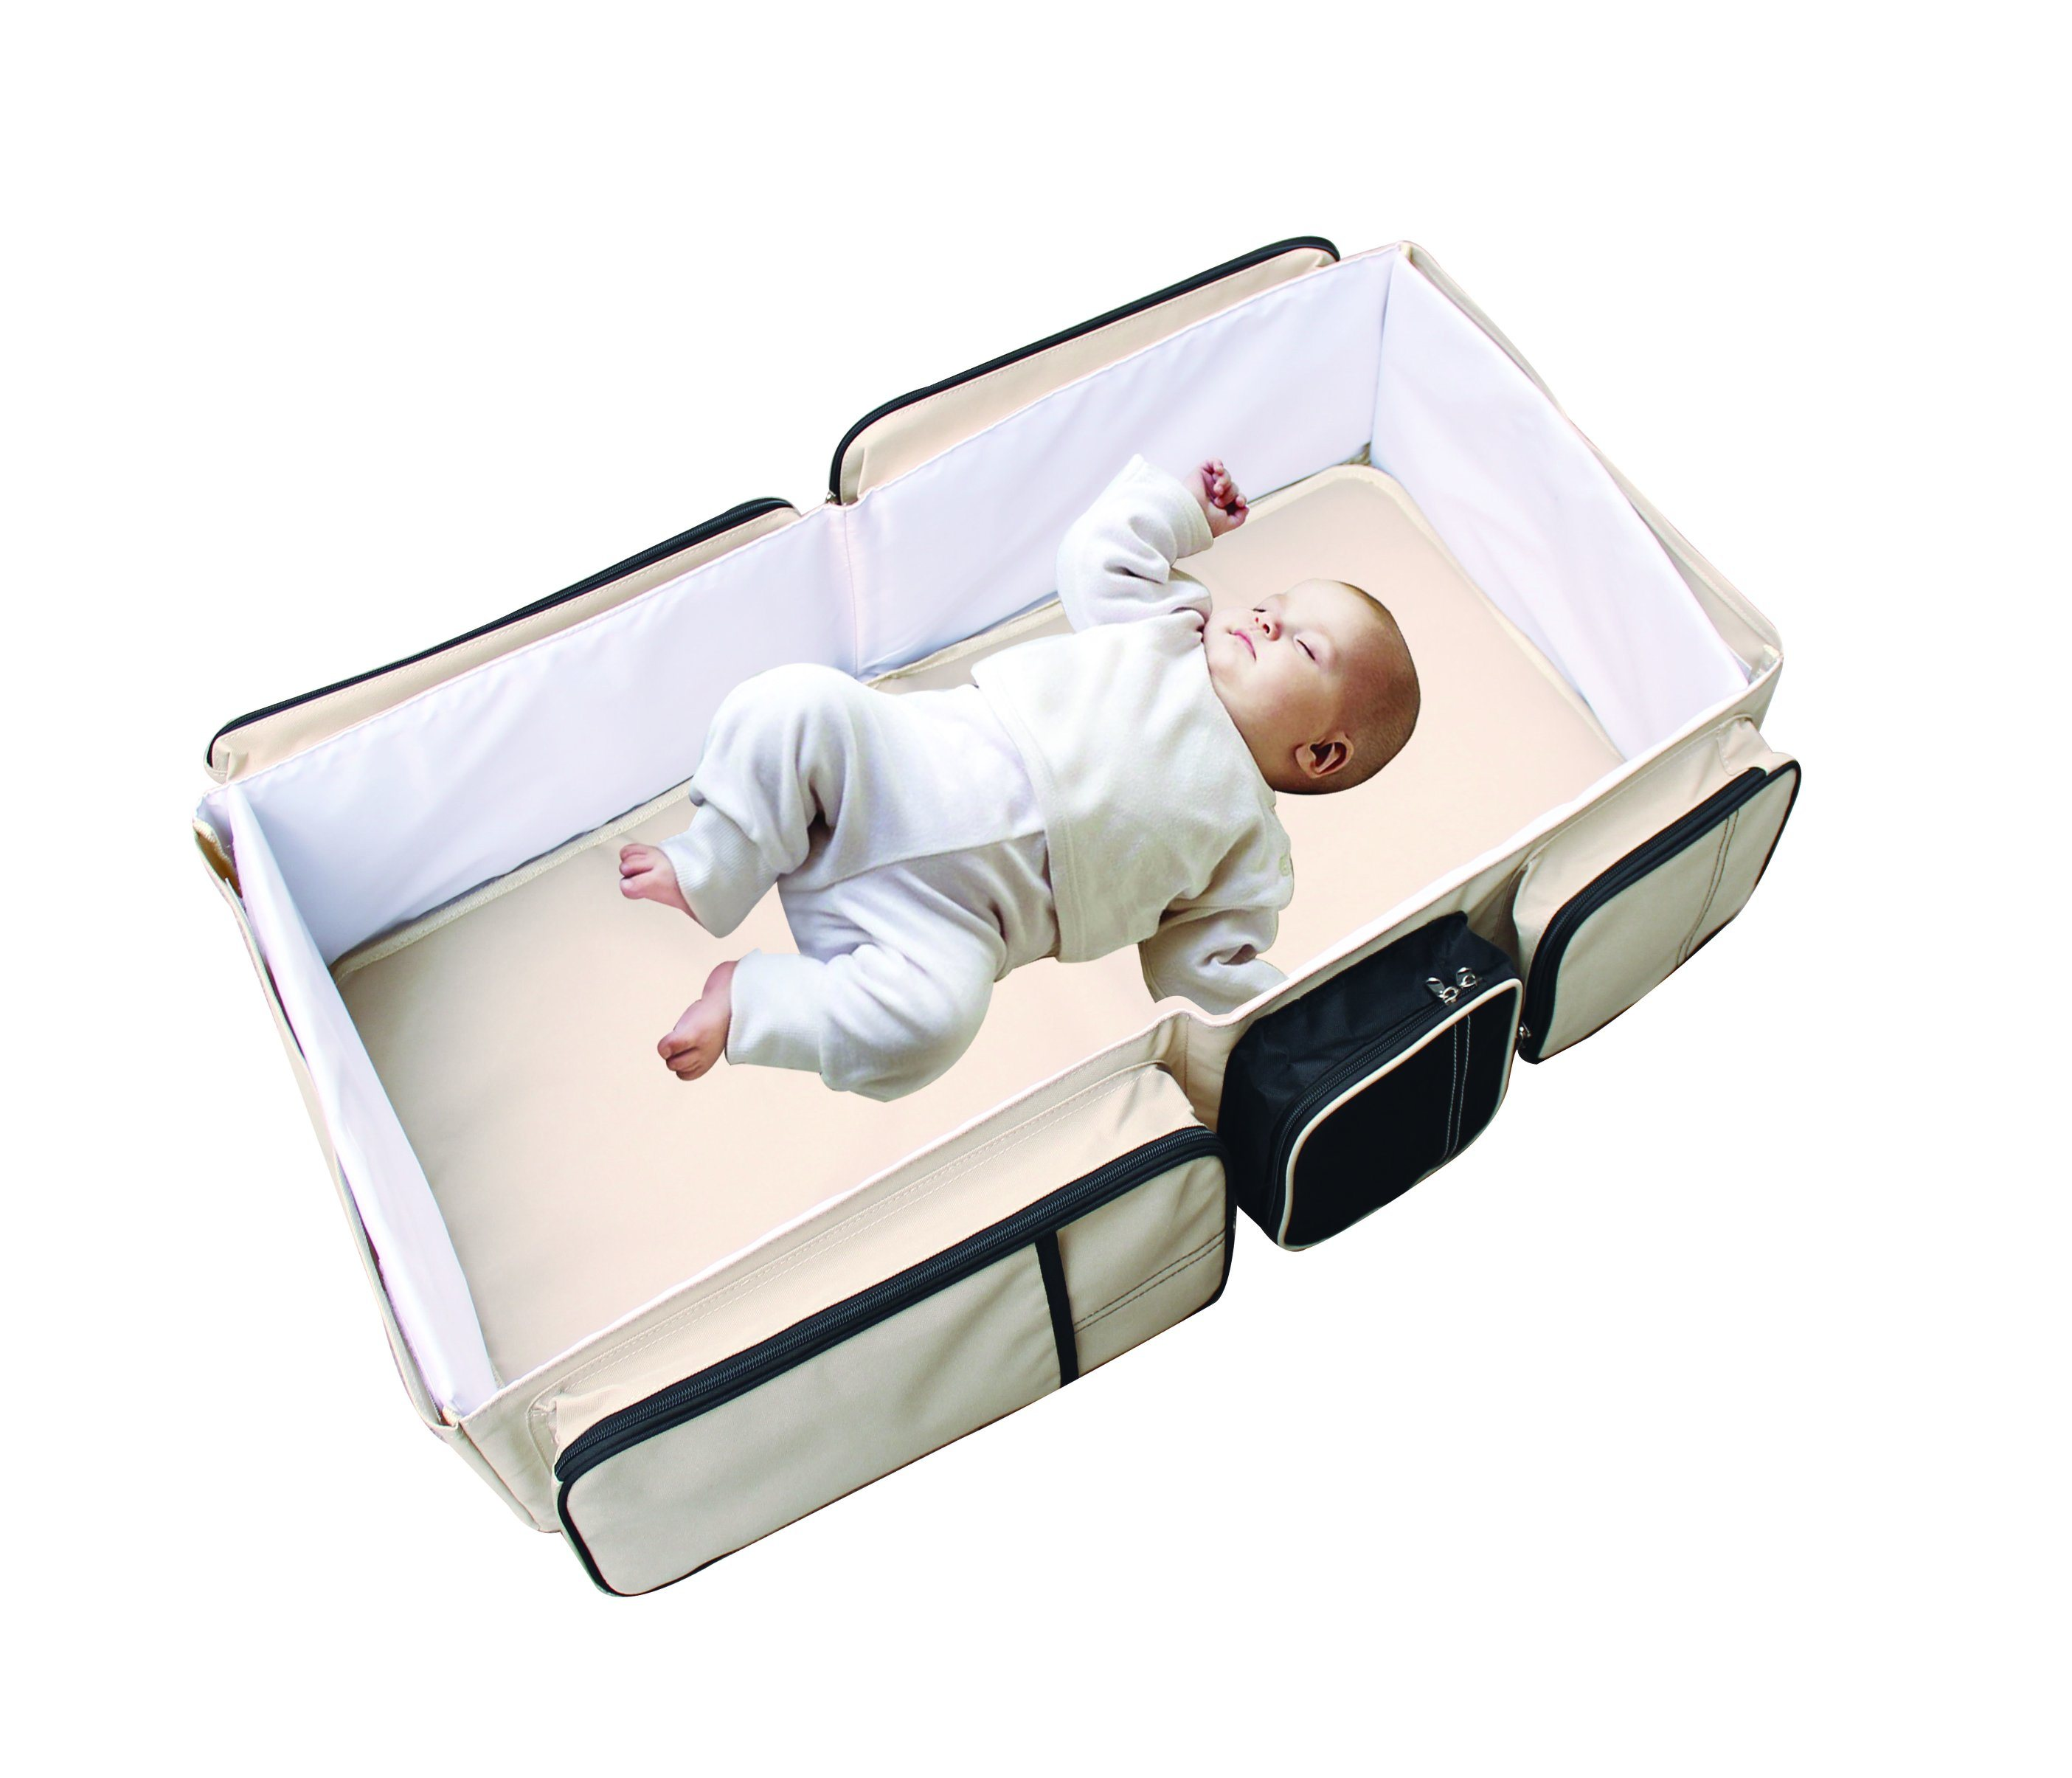 2 In1 Portable Crib Baby Bag, Collapsible Variable Package, Multifunctional Baby Travel Bag&Bed Folding Bed Anti-Mosquito Insulation Game Handle Shoulder 160101